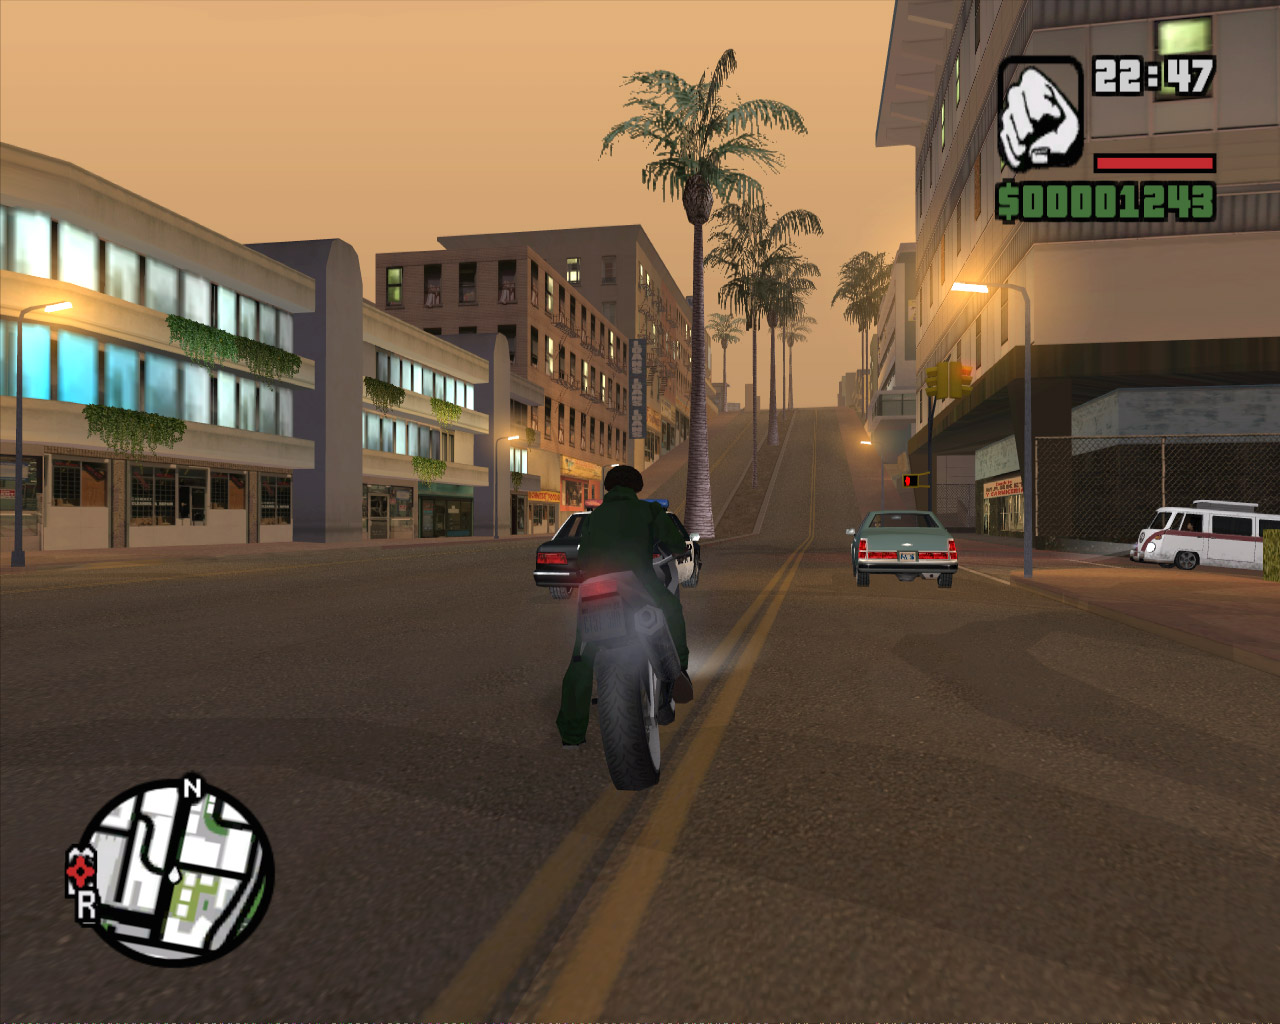 PC and Android GAme Free Download  Grand theft Auto San Andreas Game     An error occurred